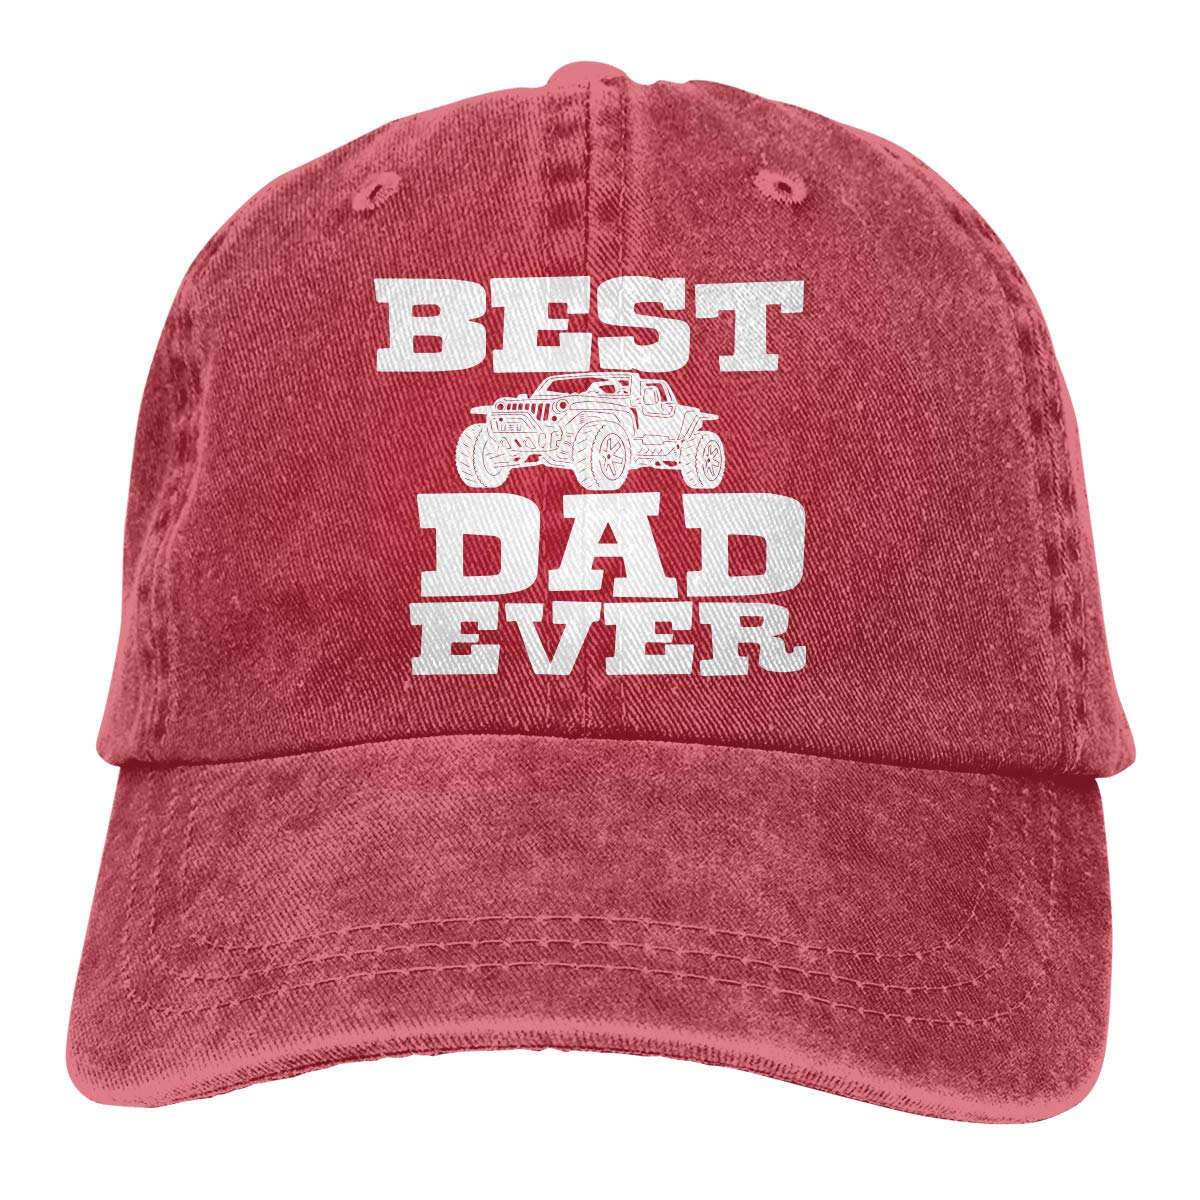 PMGM-C Best Dad Ever-1 Adult Personalize Cowboy Casquette Adjustable Baseball Cap